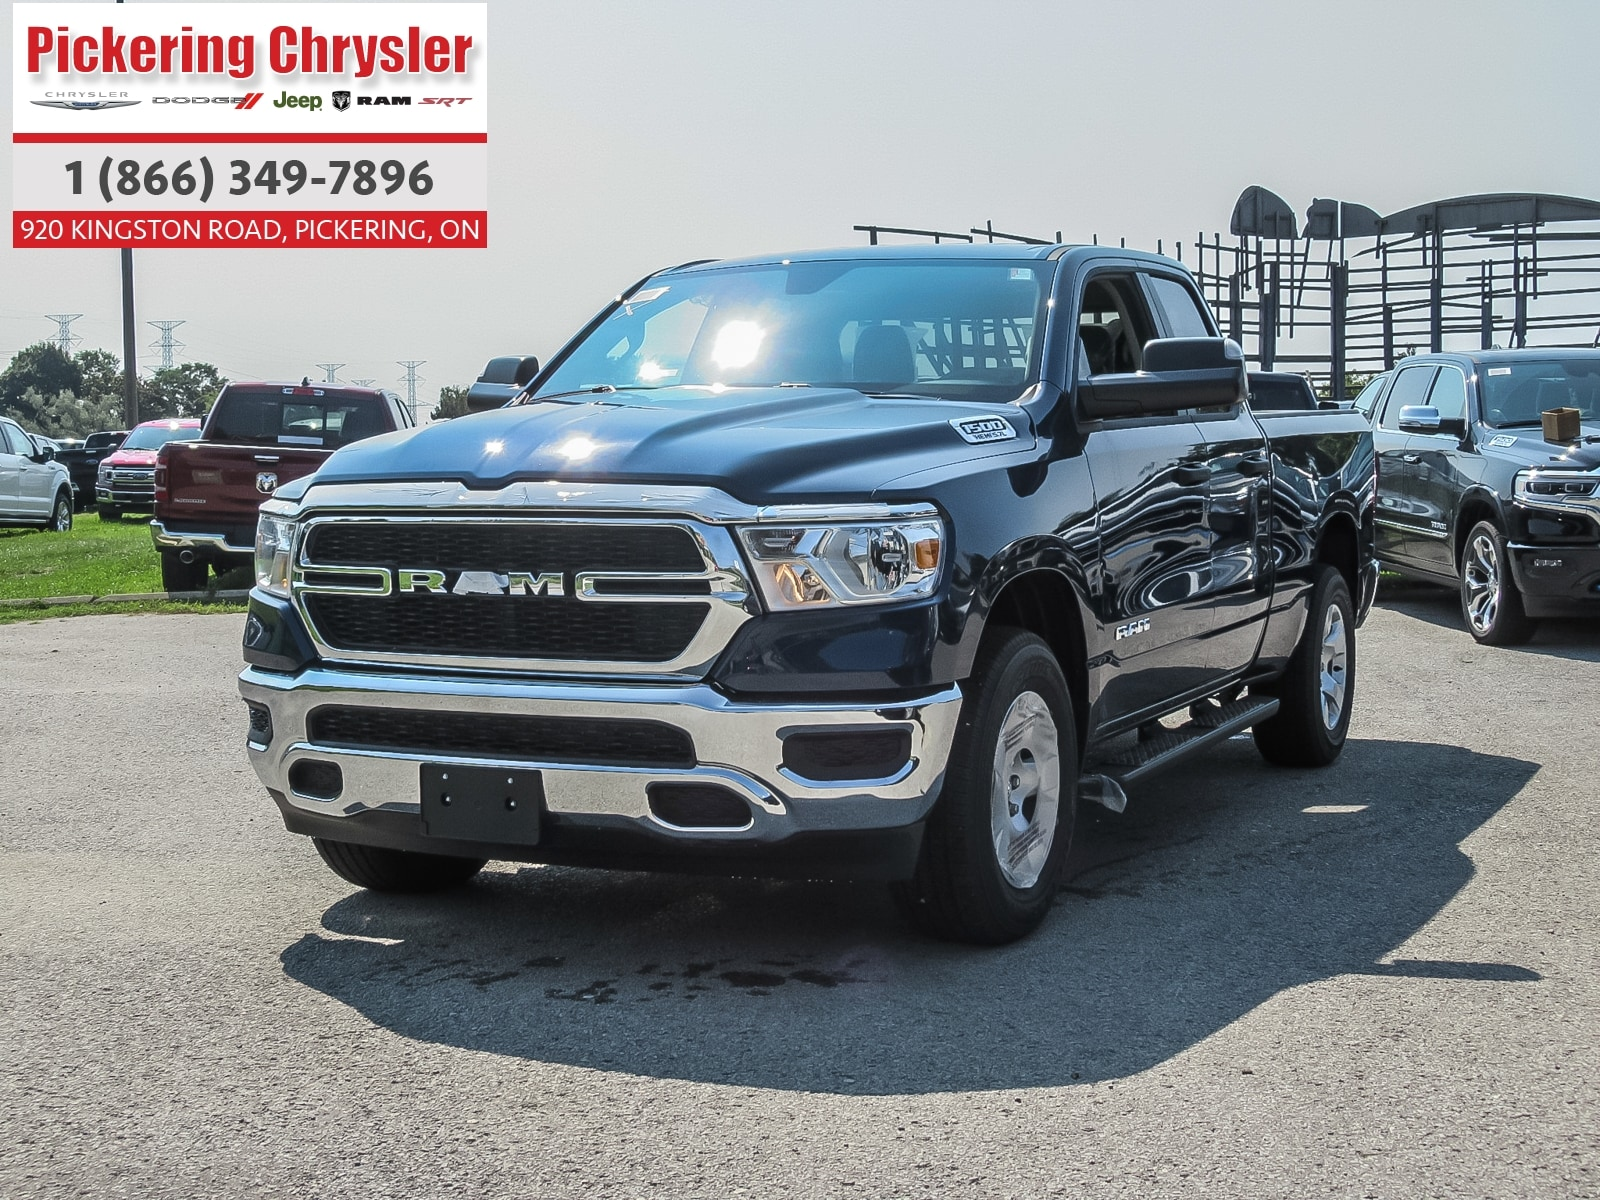 2019 Ram All-New 1500 ALL NEW DESIGN HEMI TOW PACKAGE REAR CAM QUAD CAB Truck Quad Cab